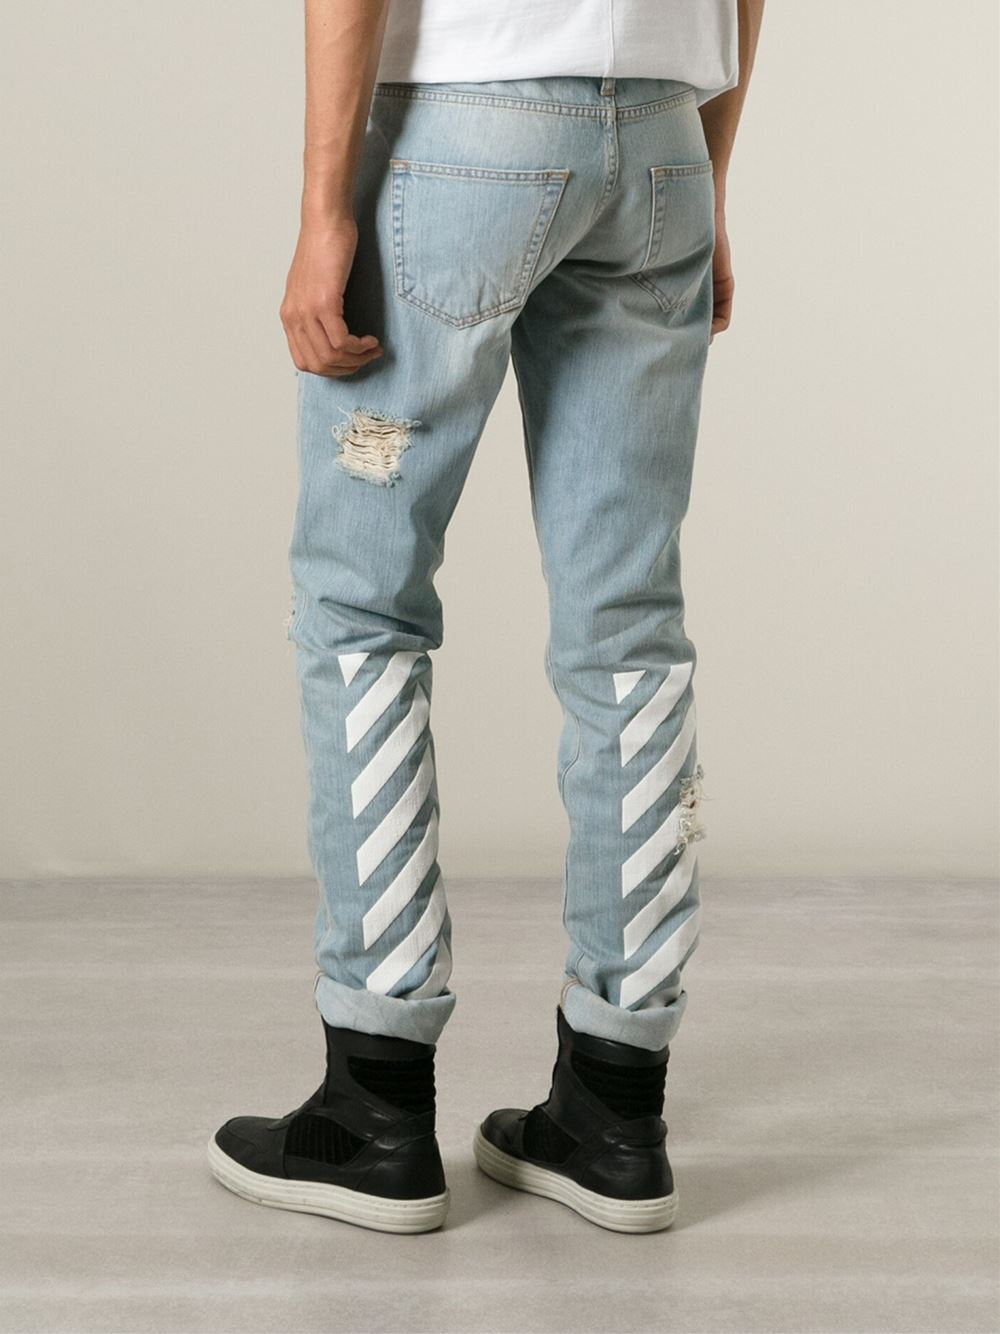 Off White Jeans Bbg Clothing